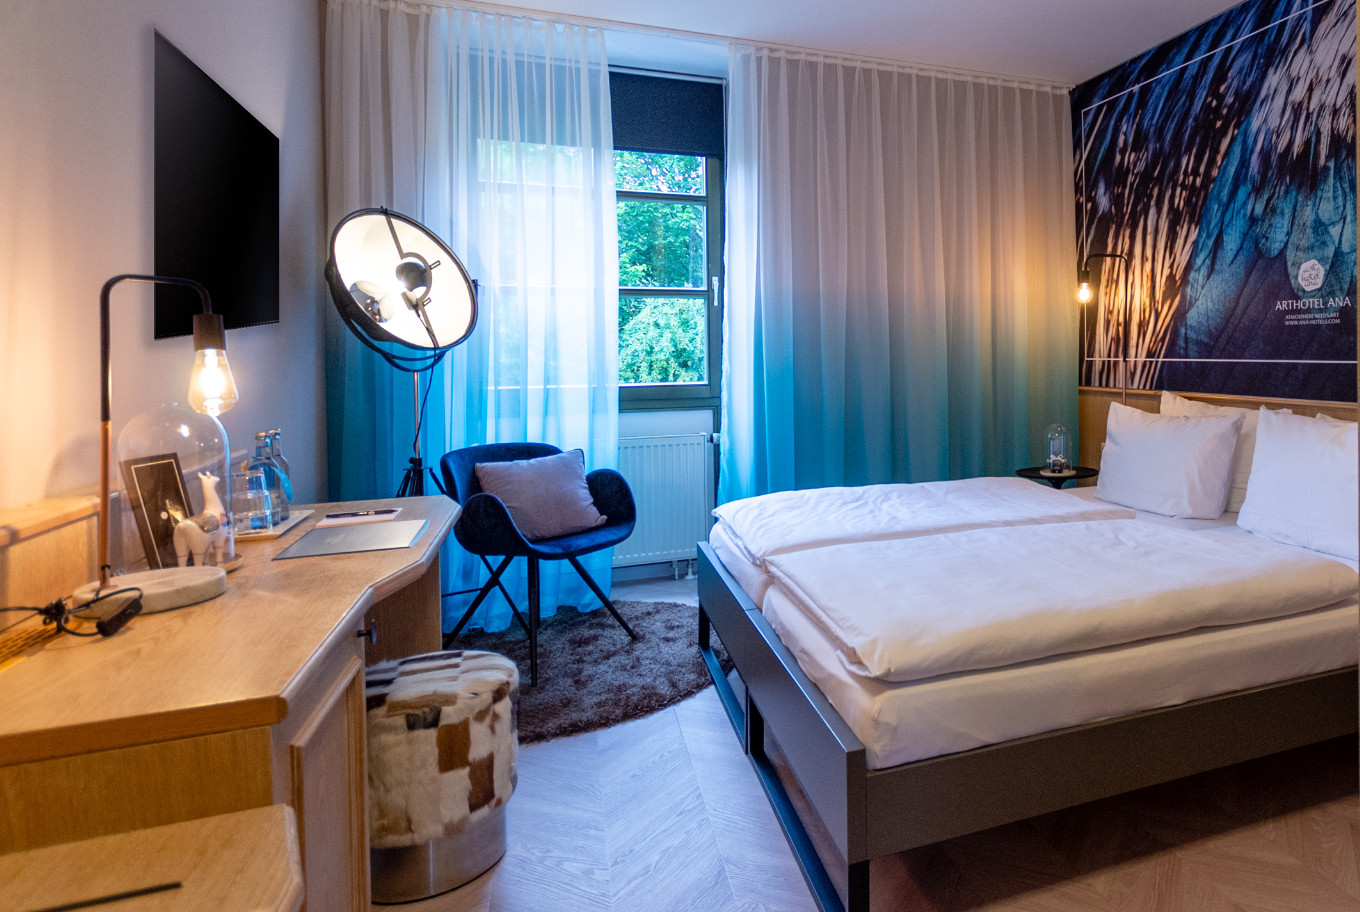 In our Augsburg Hotel the double rooms are modernly furnished.